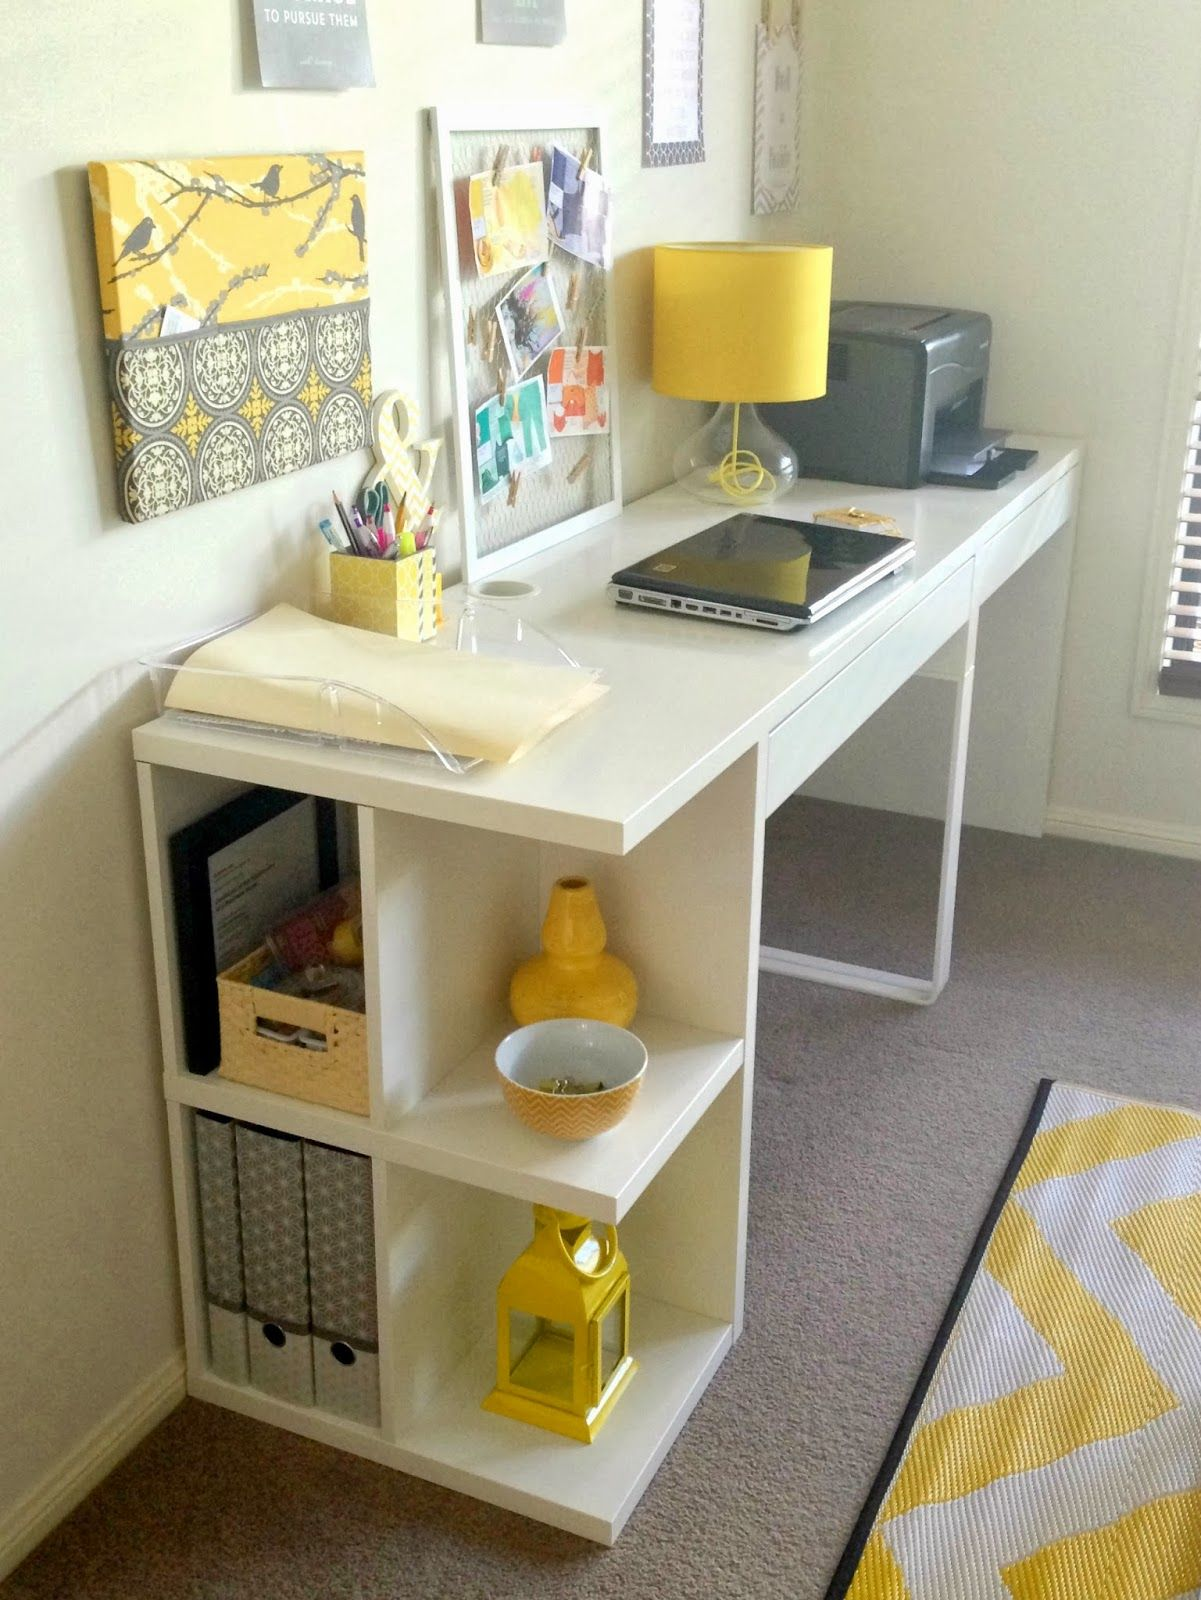 workspace picturesque ikea home office decor inspiration. Room · Charming Ikea Micke Desk Workspace Picturesque Home Office Decor Inspiration A